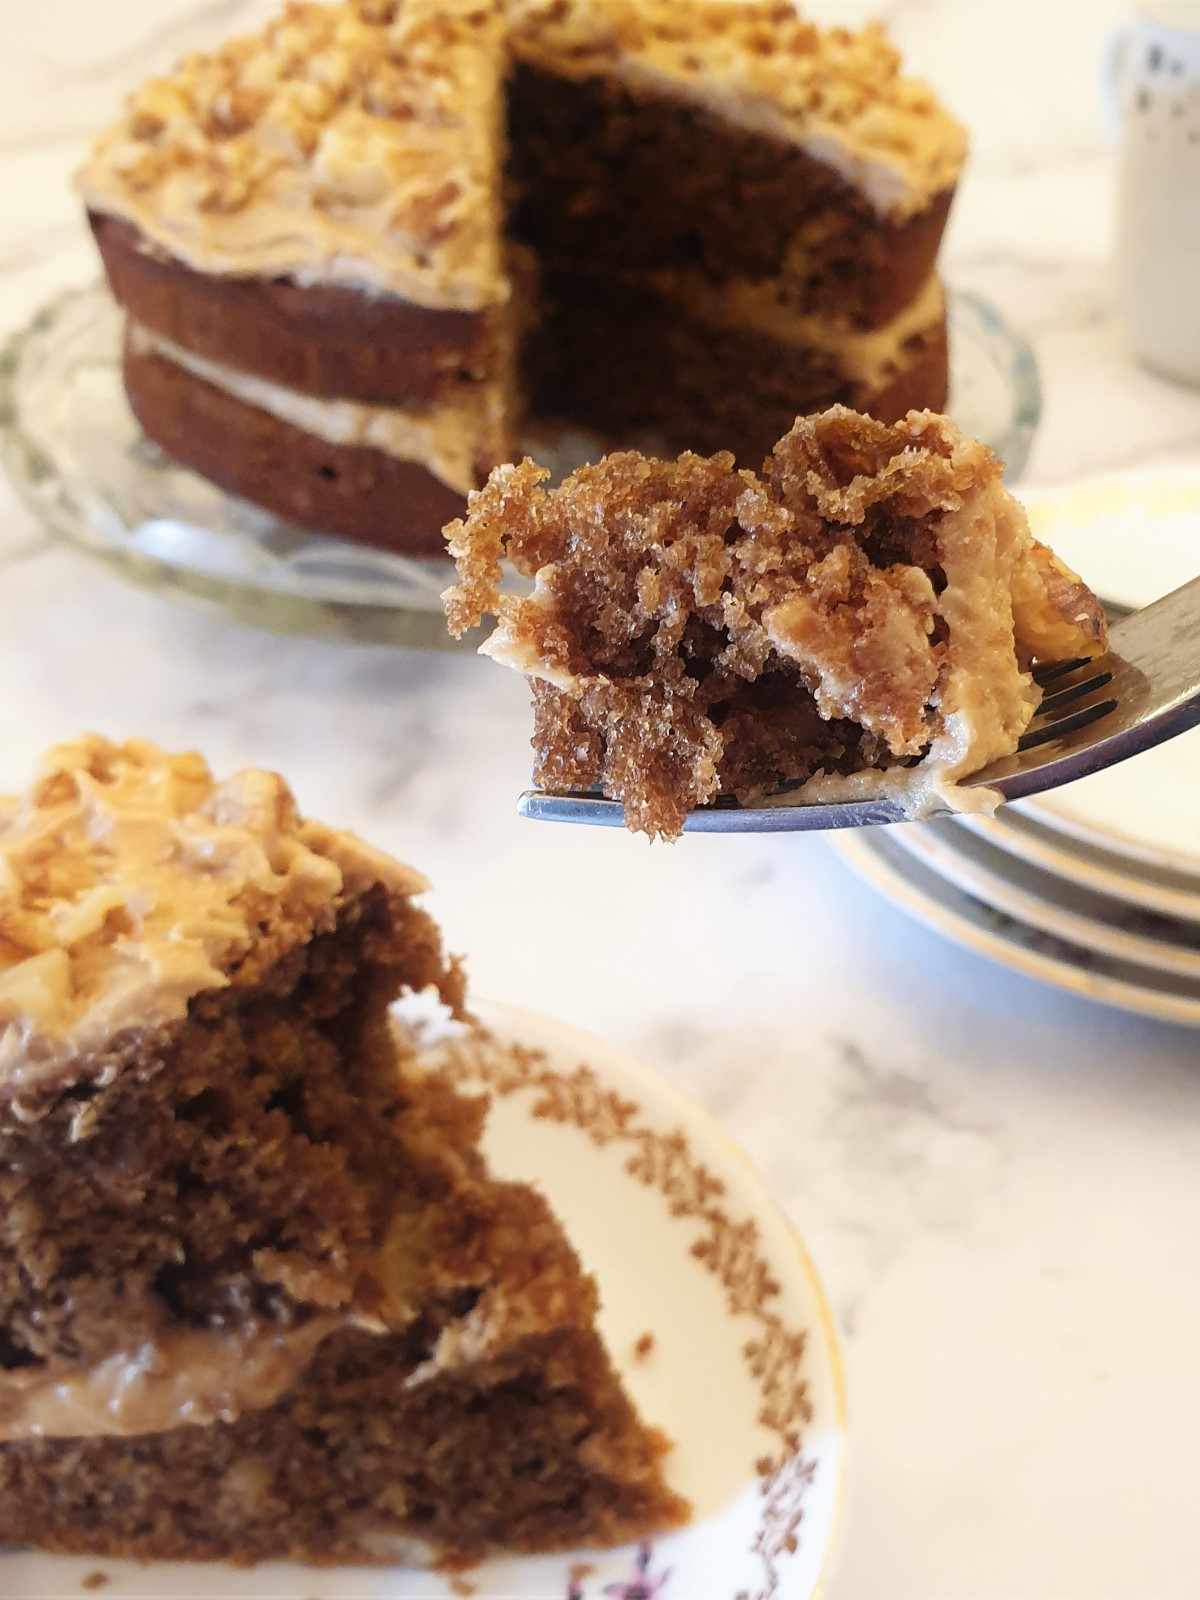 A forkful of coffee walnut cake.